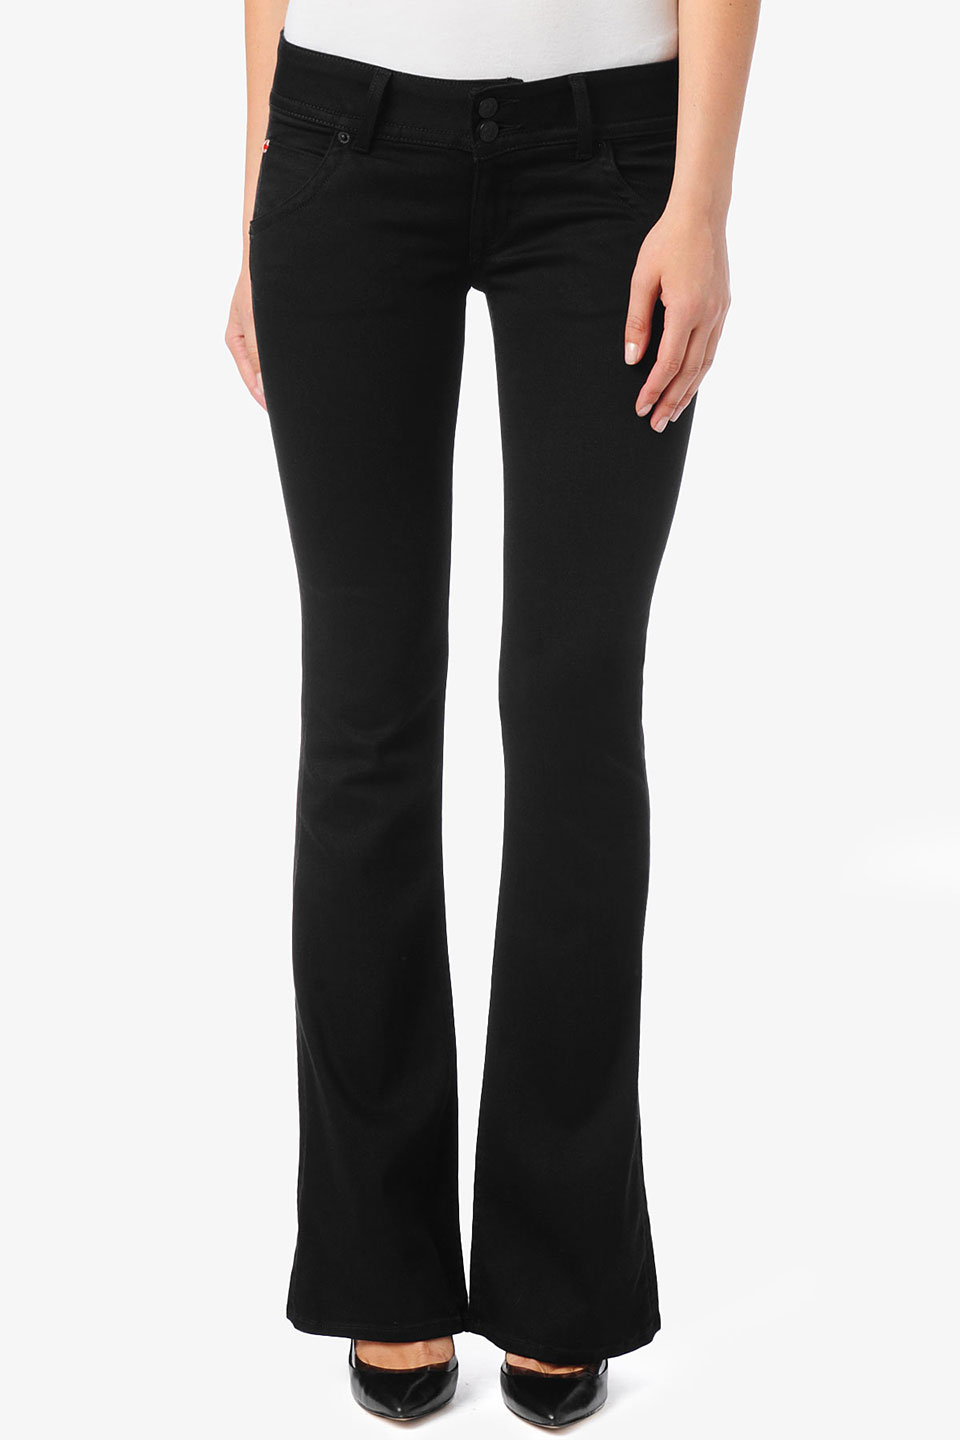 Lyst - Hudson Jeans Signature Bootcut Supermodel in Black